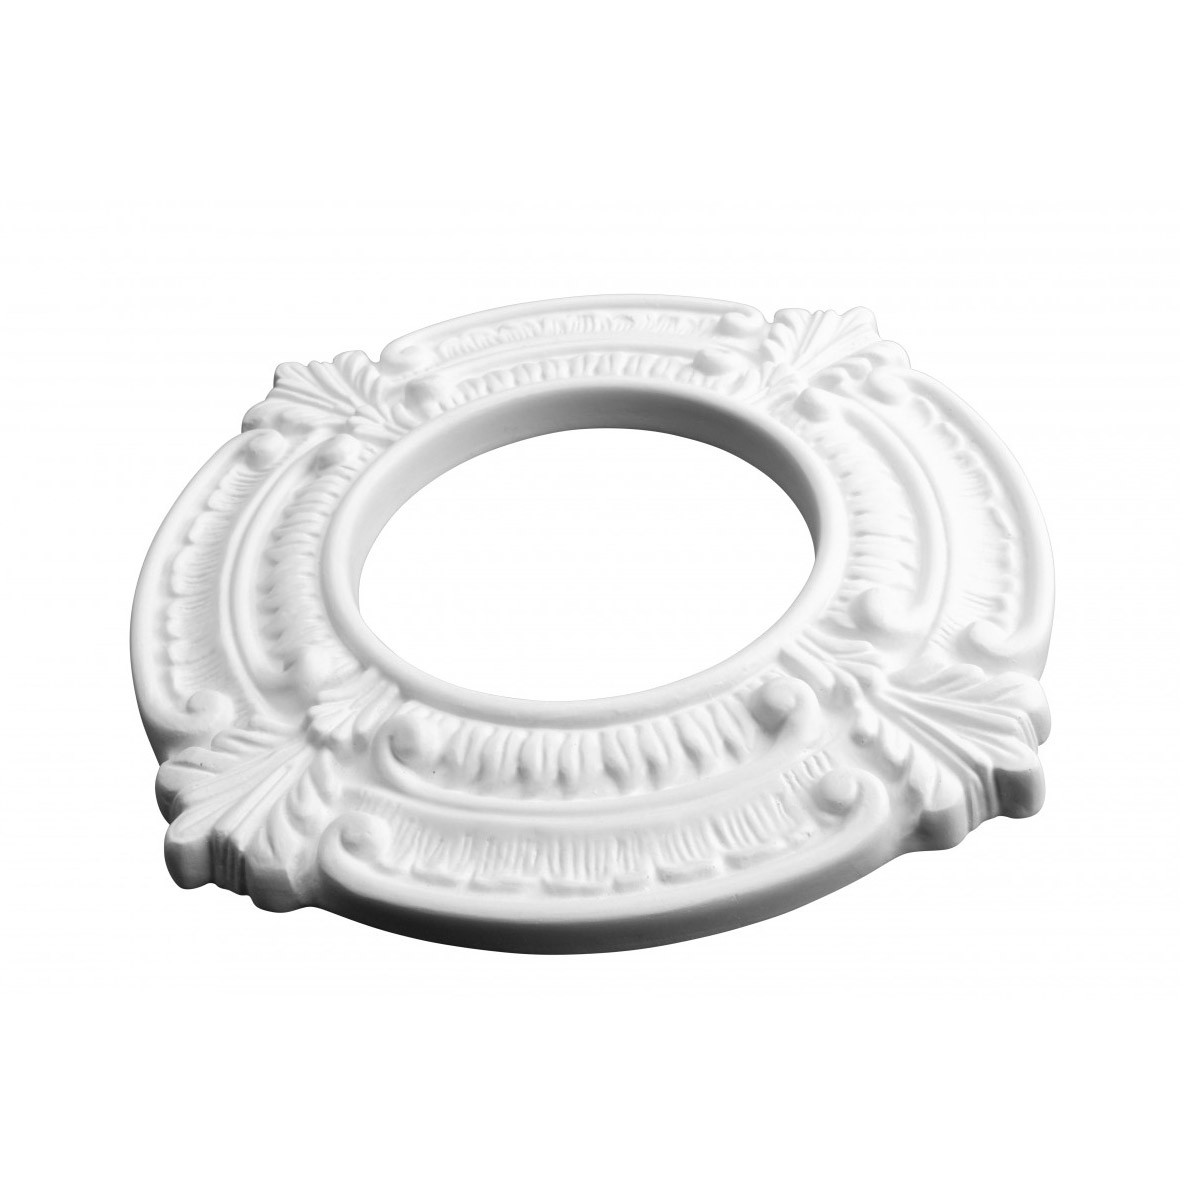 3 White Spotlight Ring 4 ID x 8 OD Lightweight 3 Pack White Spotlight Ring diy classic traditional antique vintage rustic artisan victorian colonial authentic